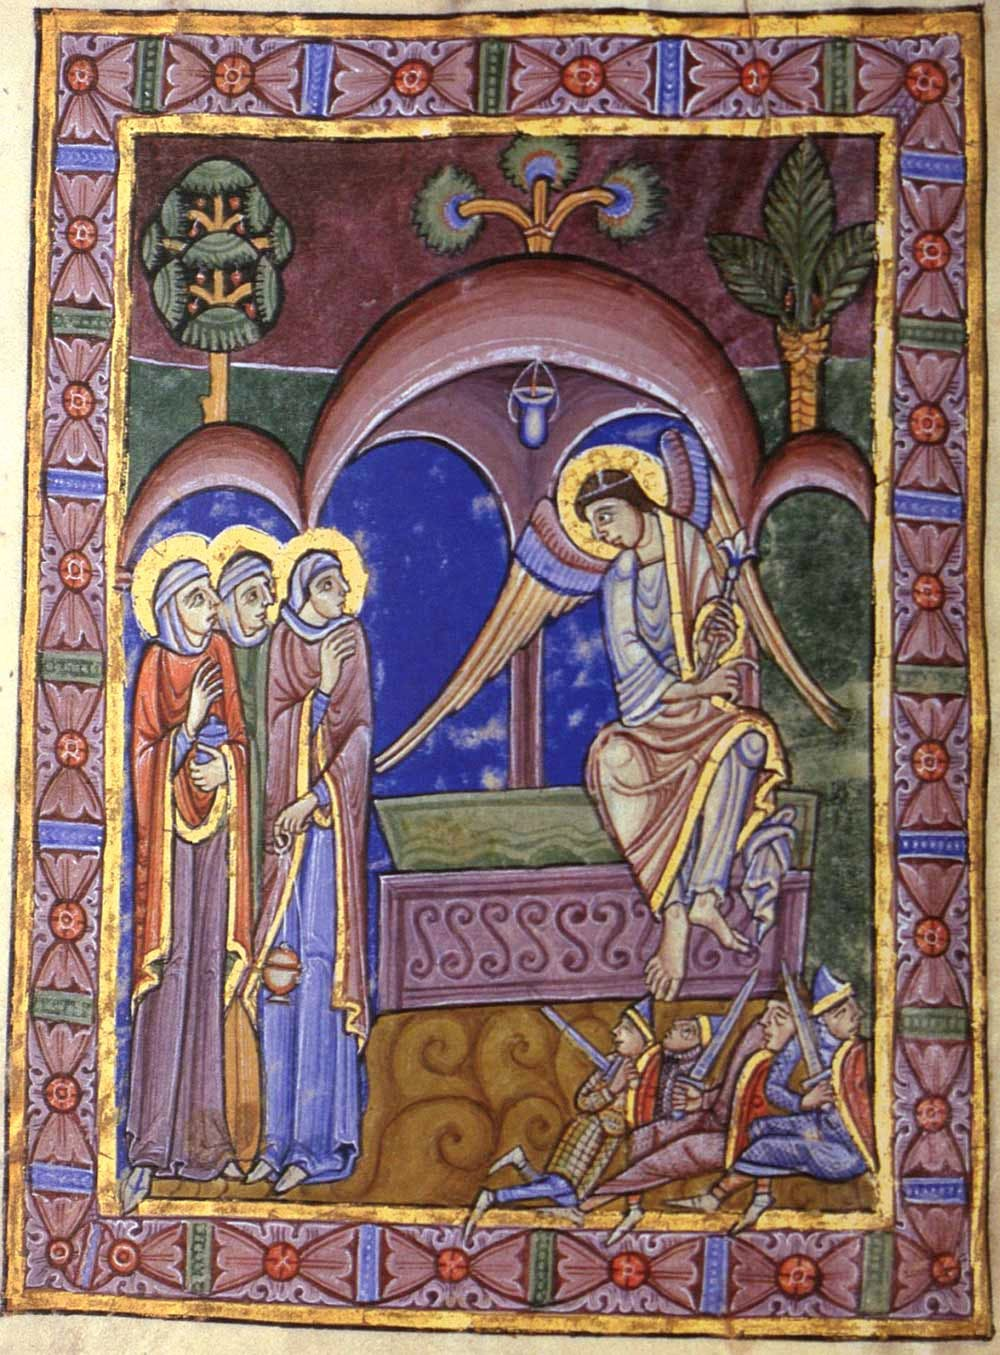 (c. 1130), The Alexis Master, St Albans Psalter,